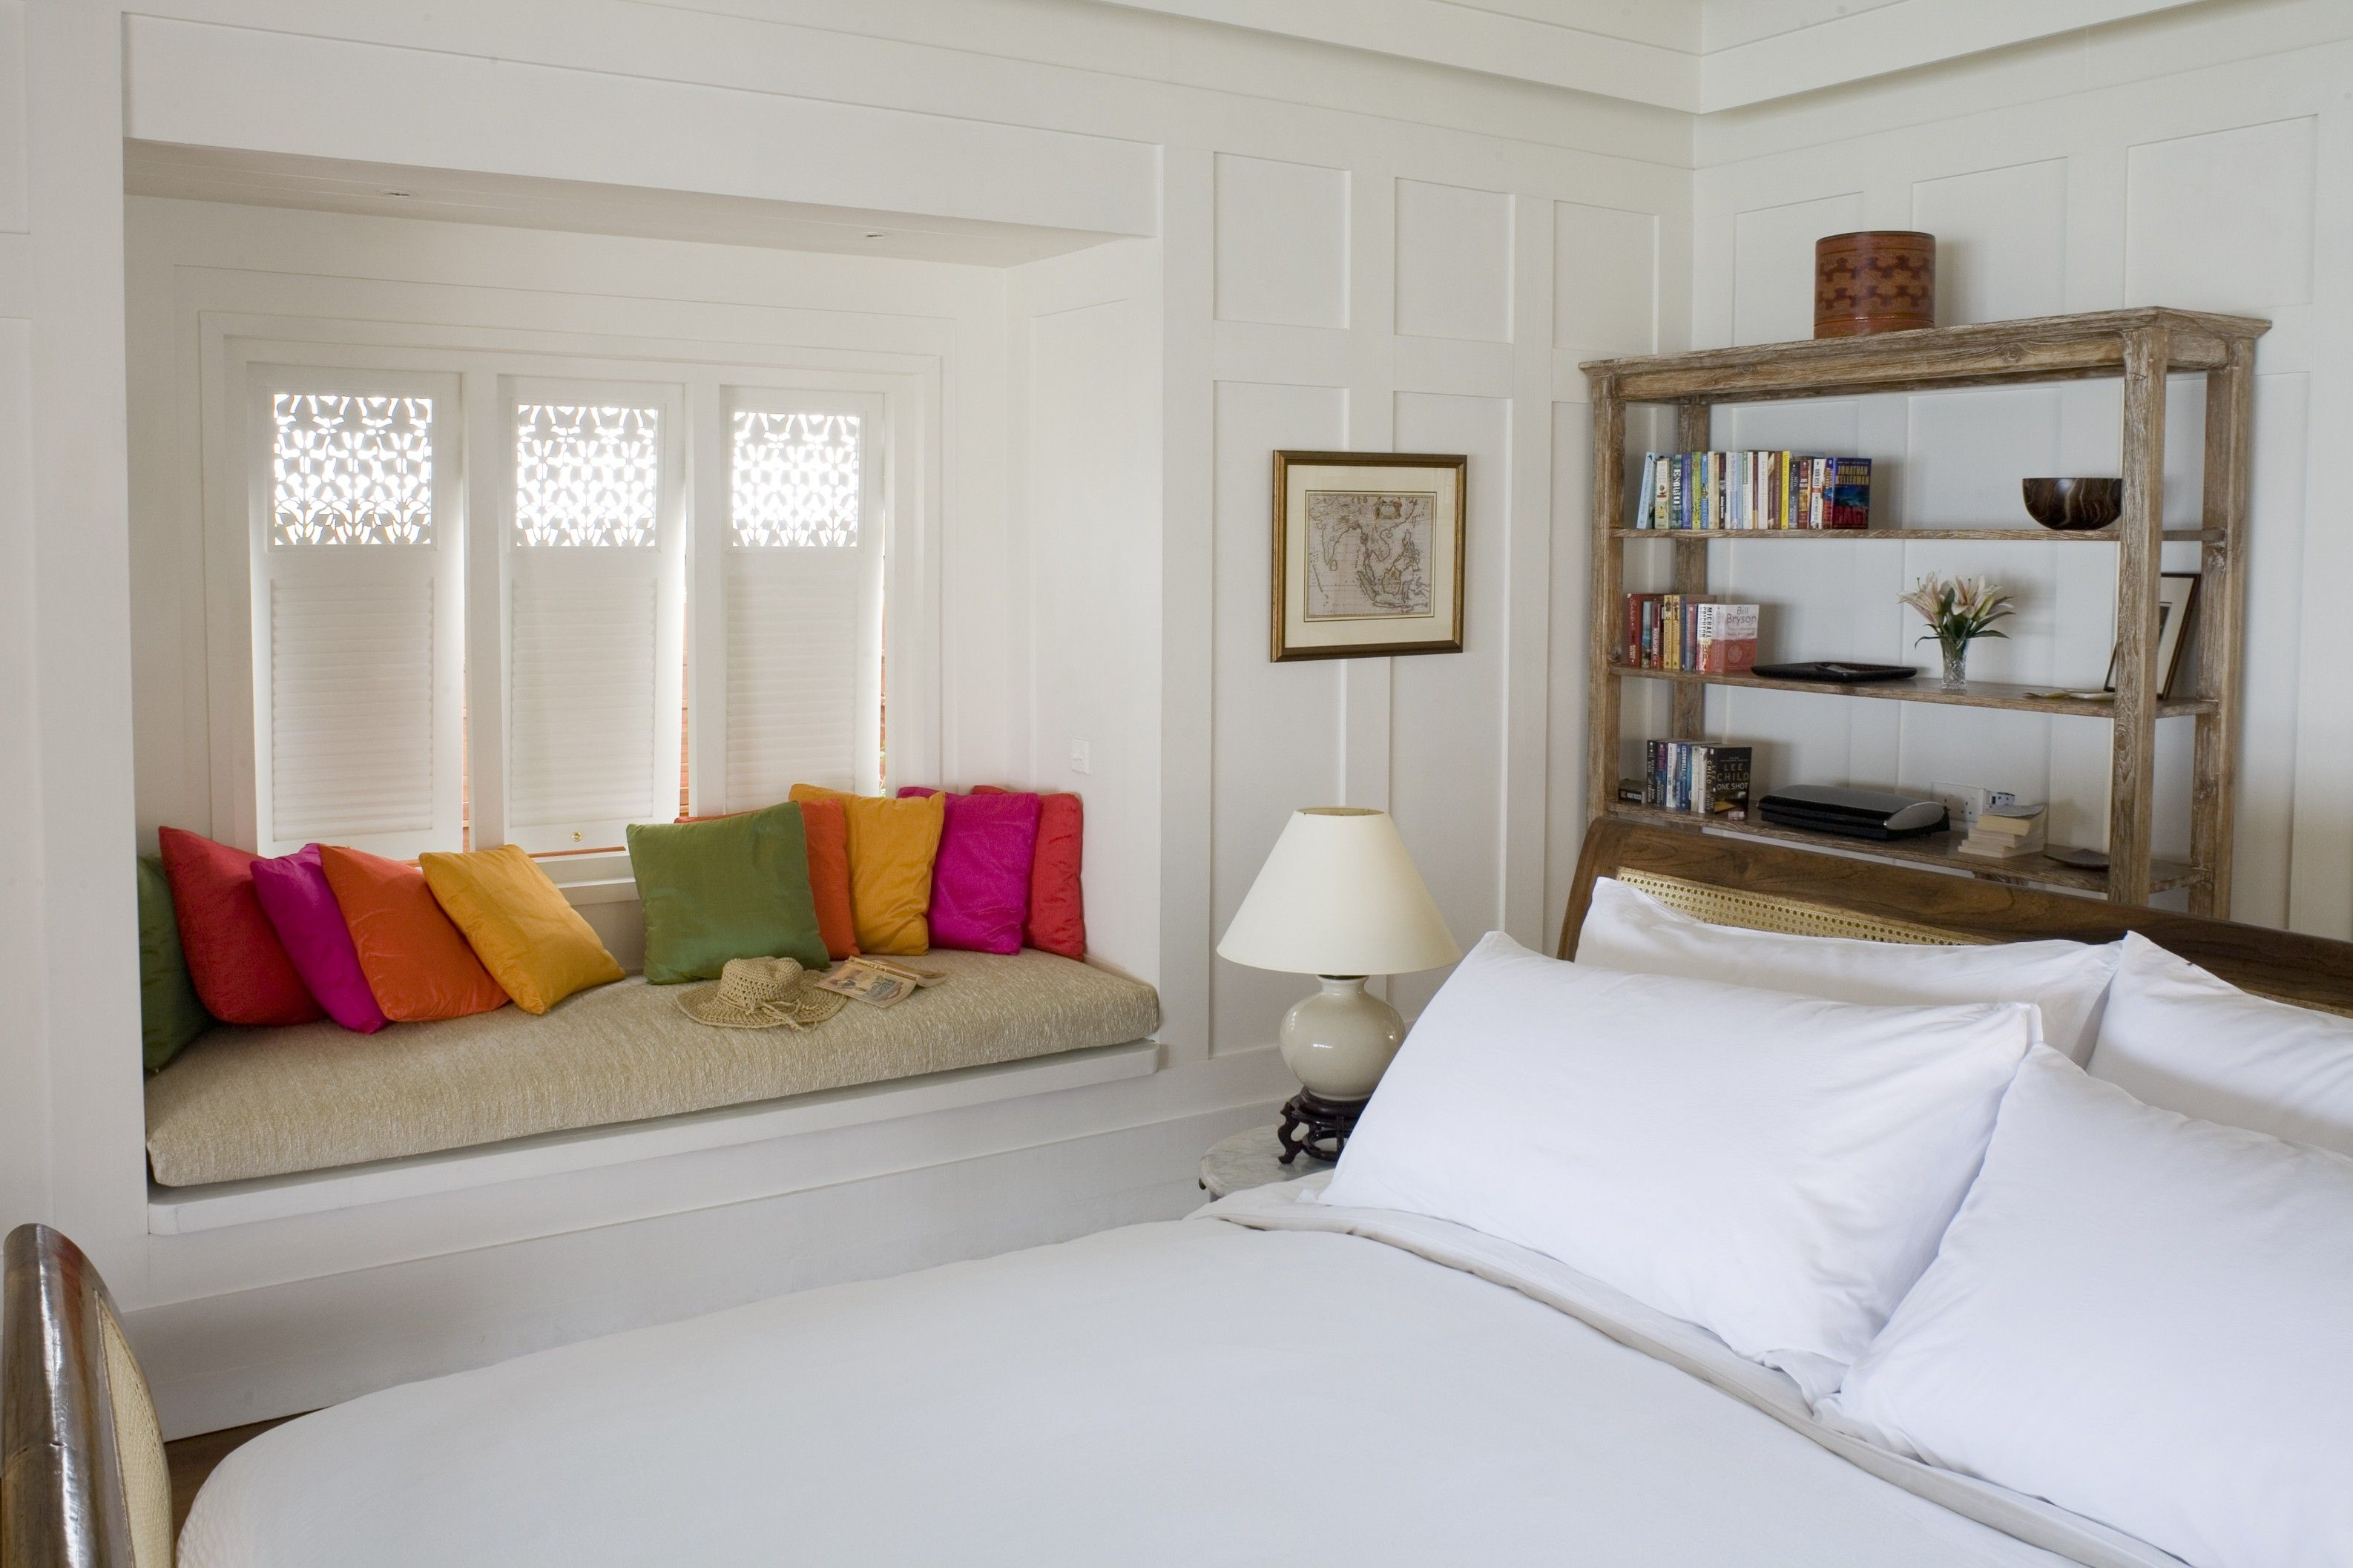 Small bedroom designs modern furniture and room colors for spaces also pinterest bedrooms rh